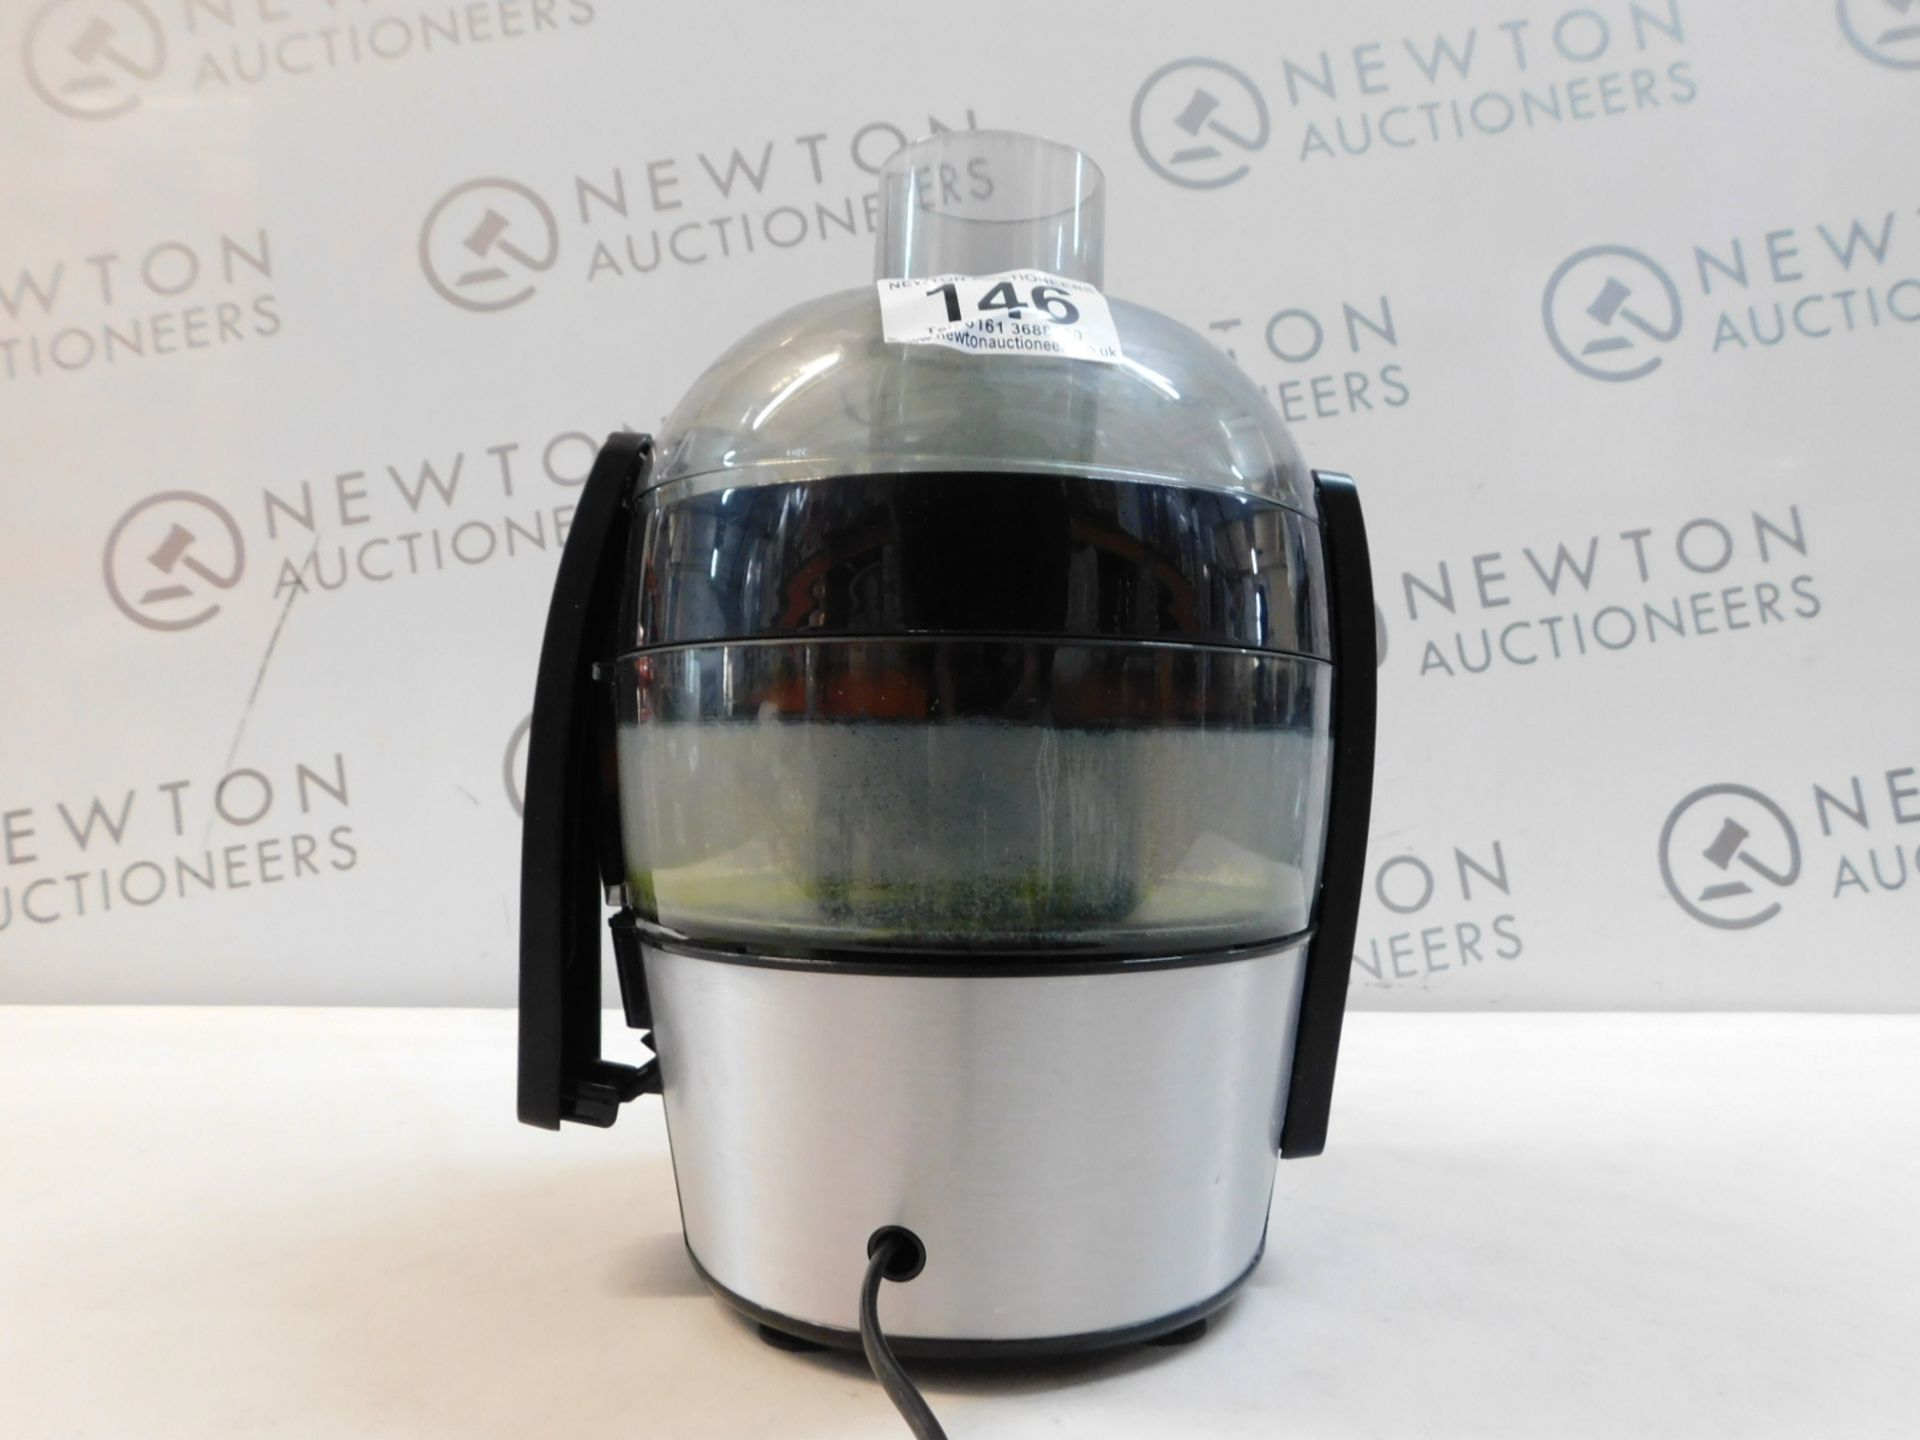 1 PHILIPS HR1836/01 VIVA COLLECTION COMPACT JUICER, 1.5 LITRE RRP £99